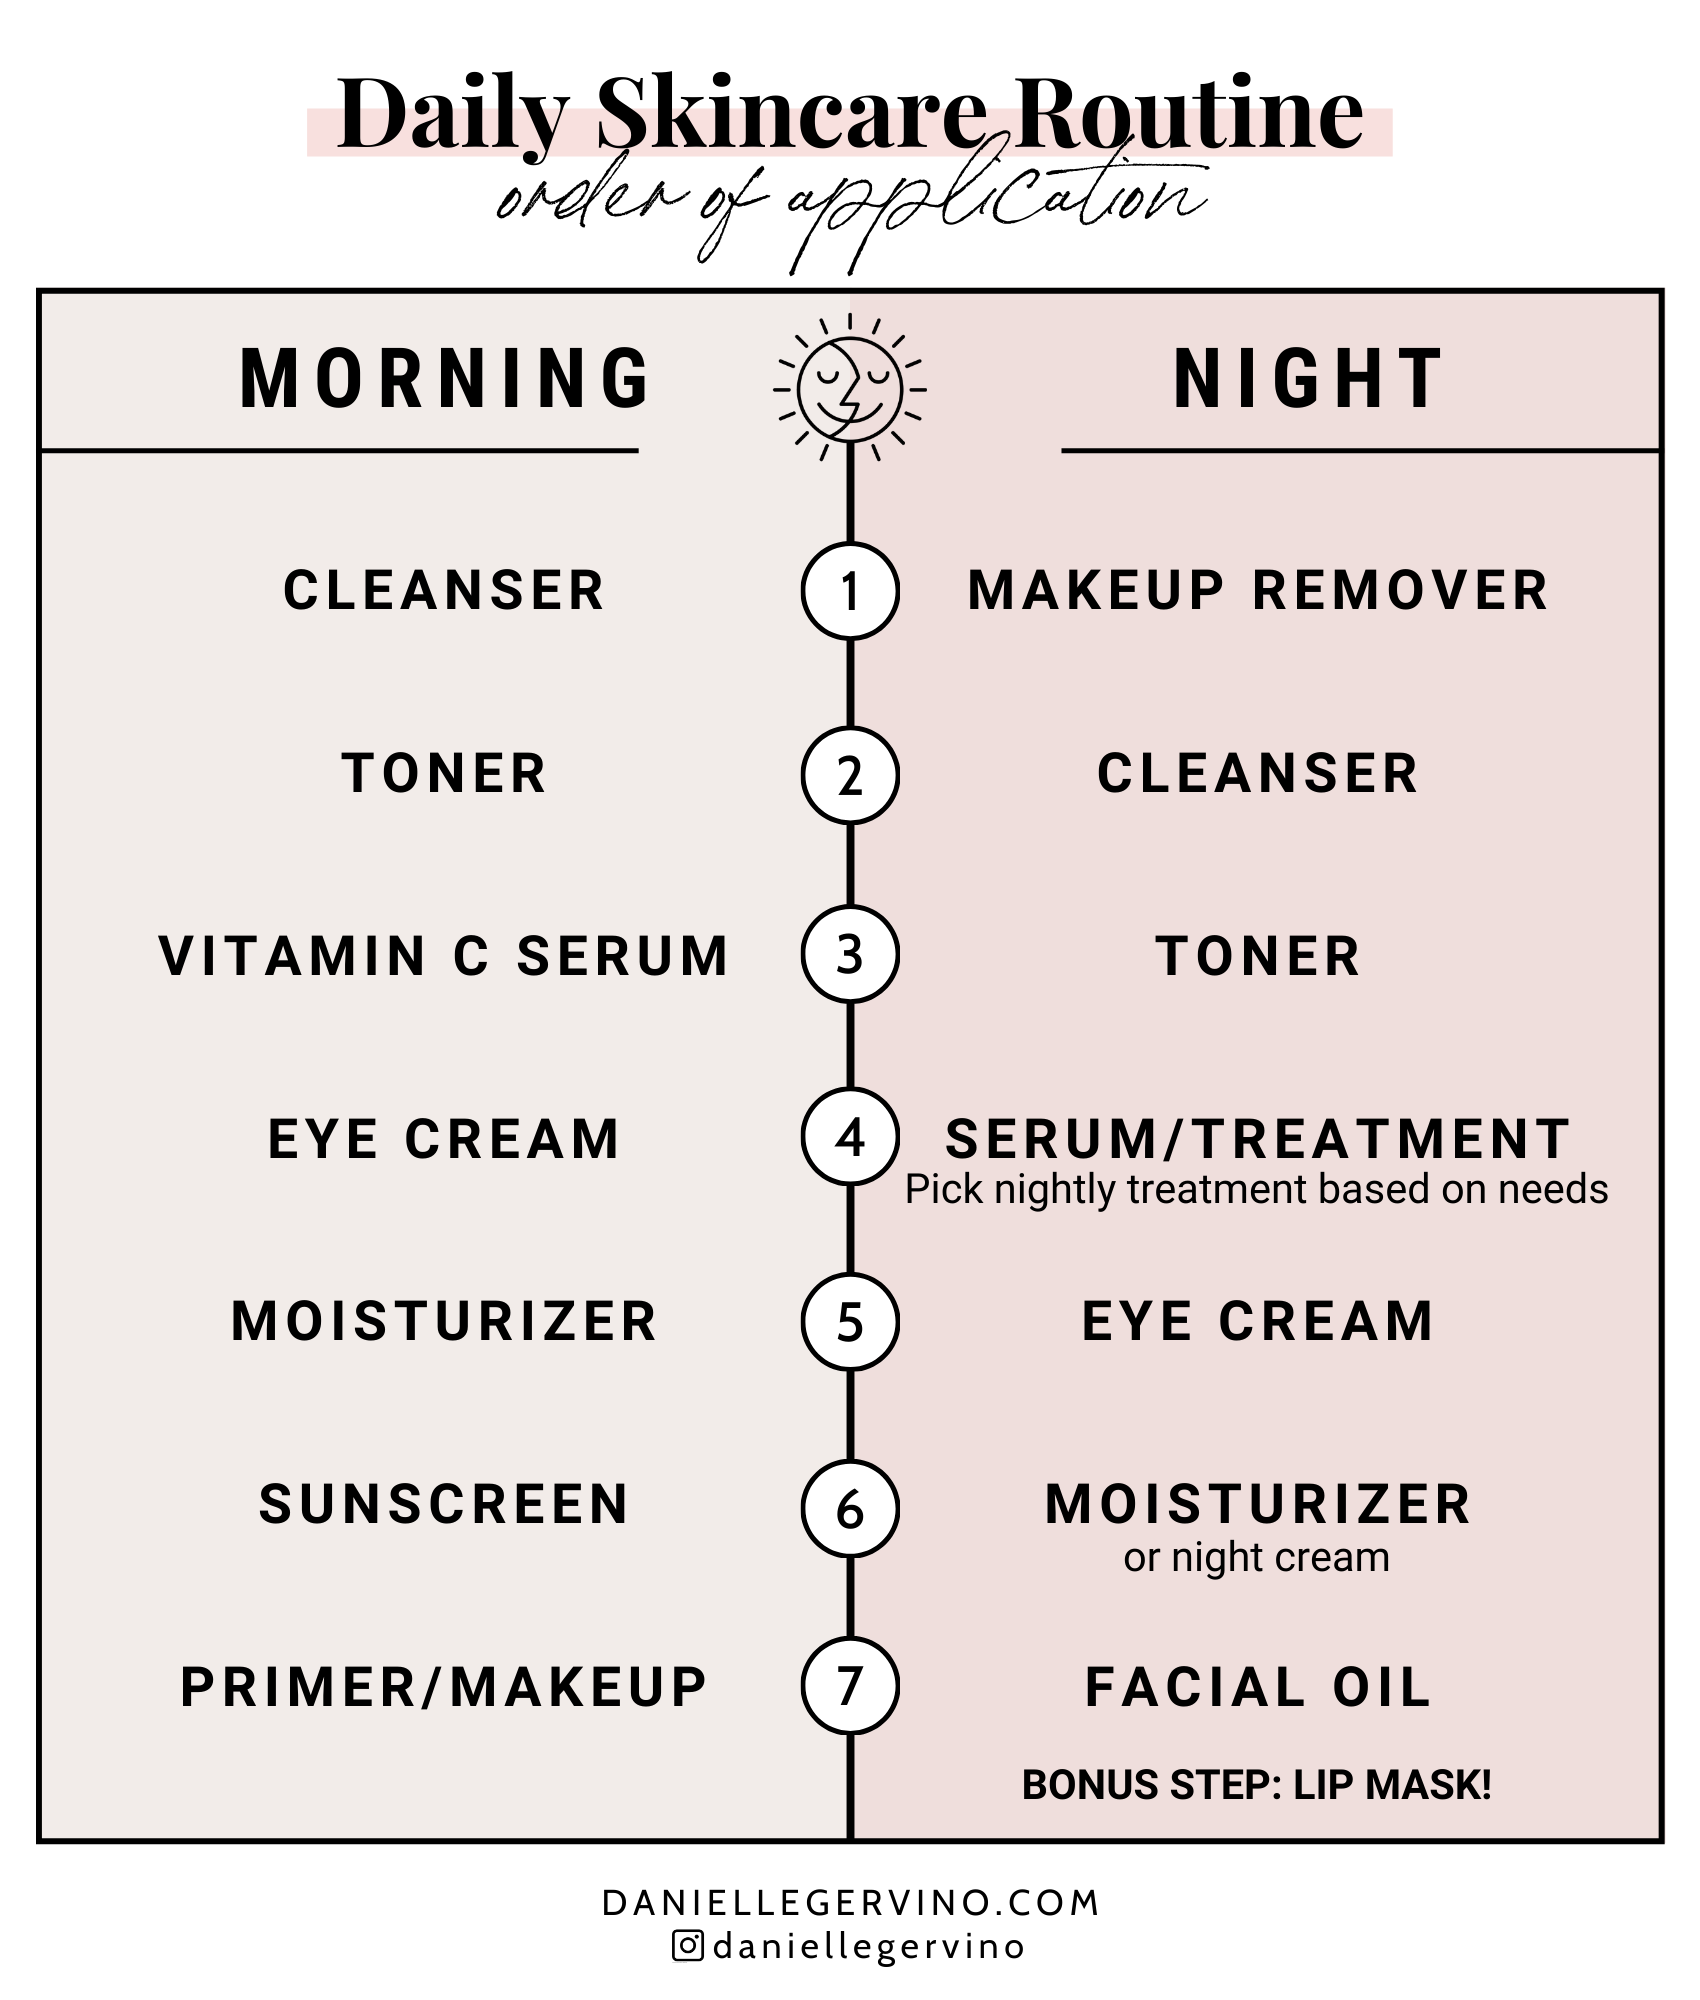 Simple Skincare Routine Order Of Application Skin Care Order Skin Care Routine Order Basic Skin Care Routine